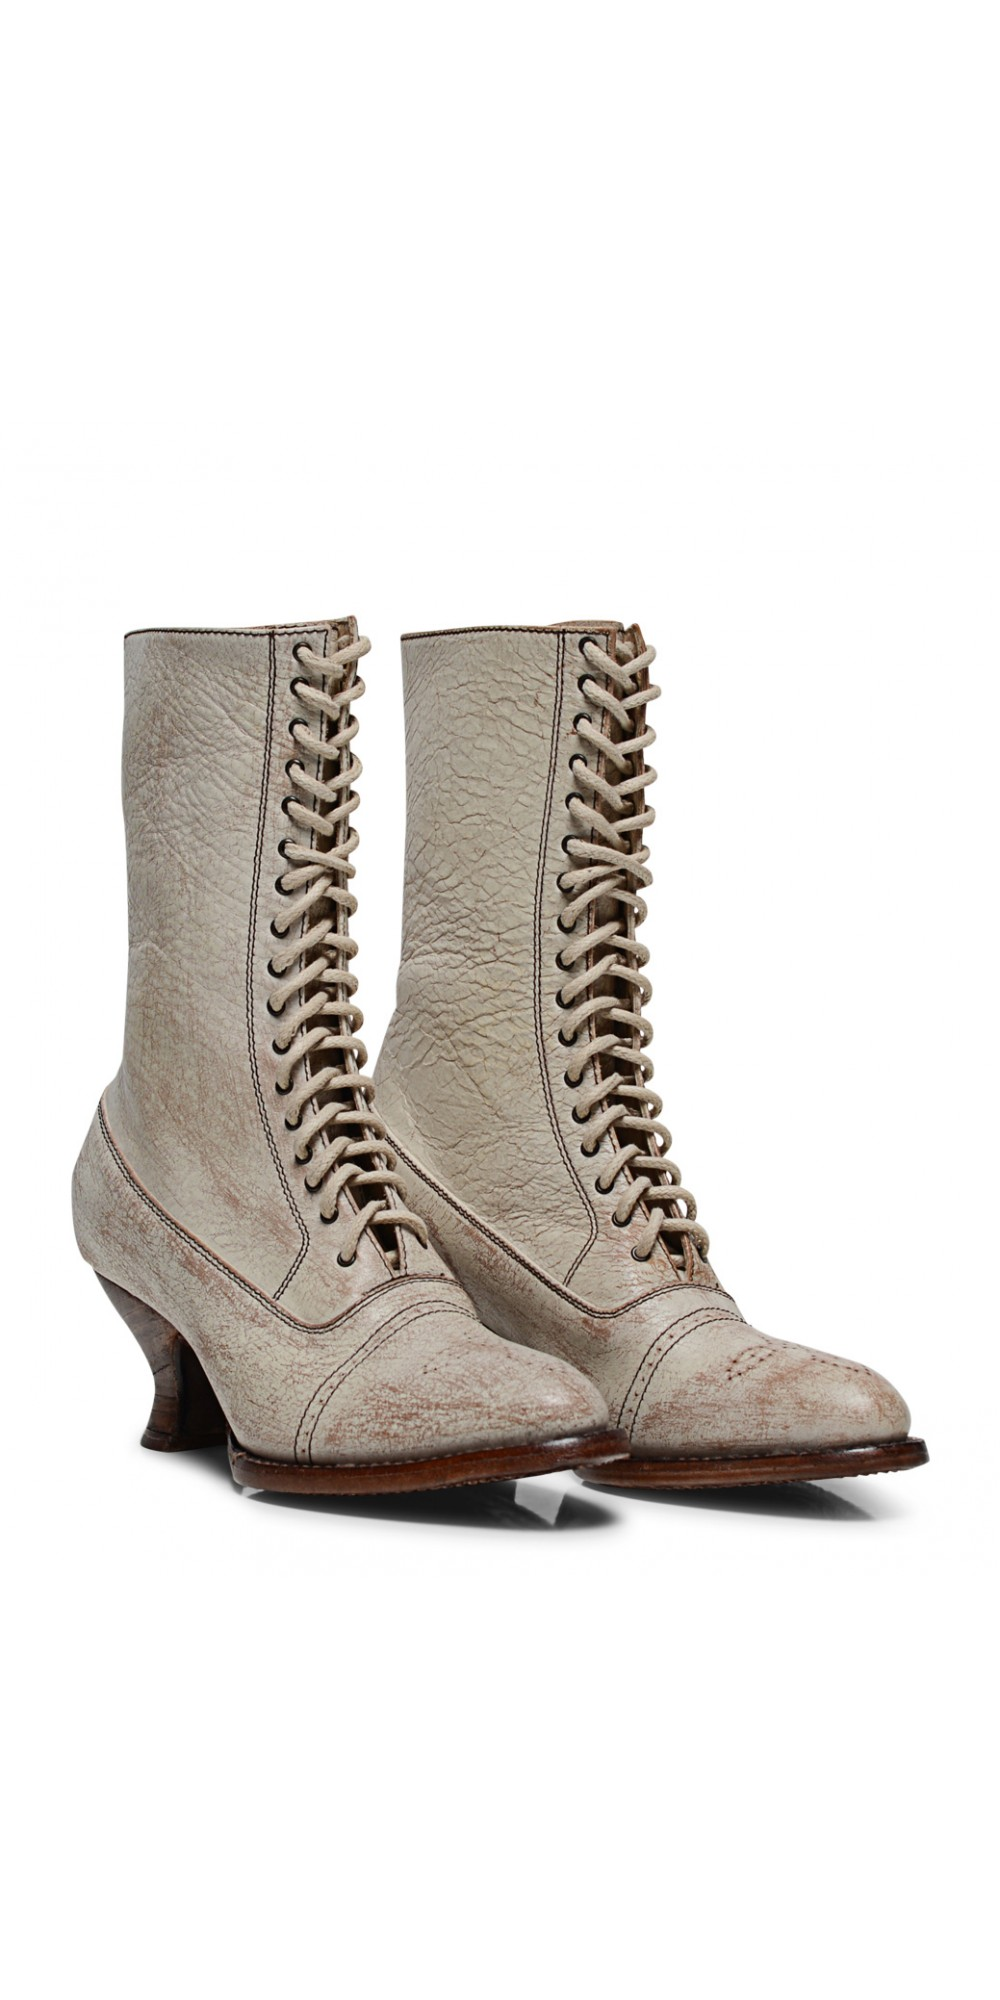 Mirabelle Victorian Mid Calf Leather Wedding Boots In